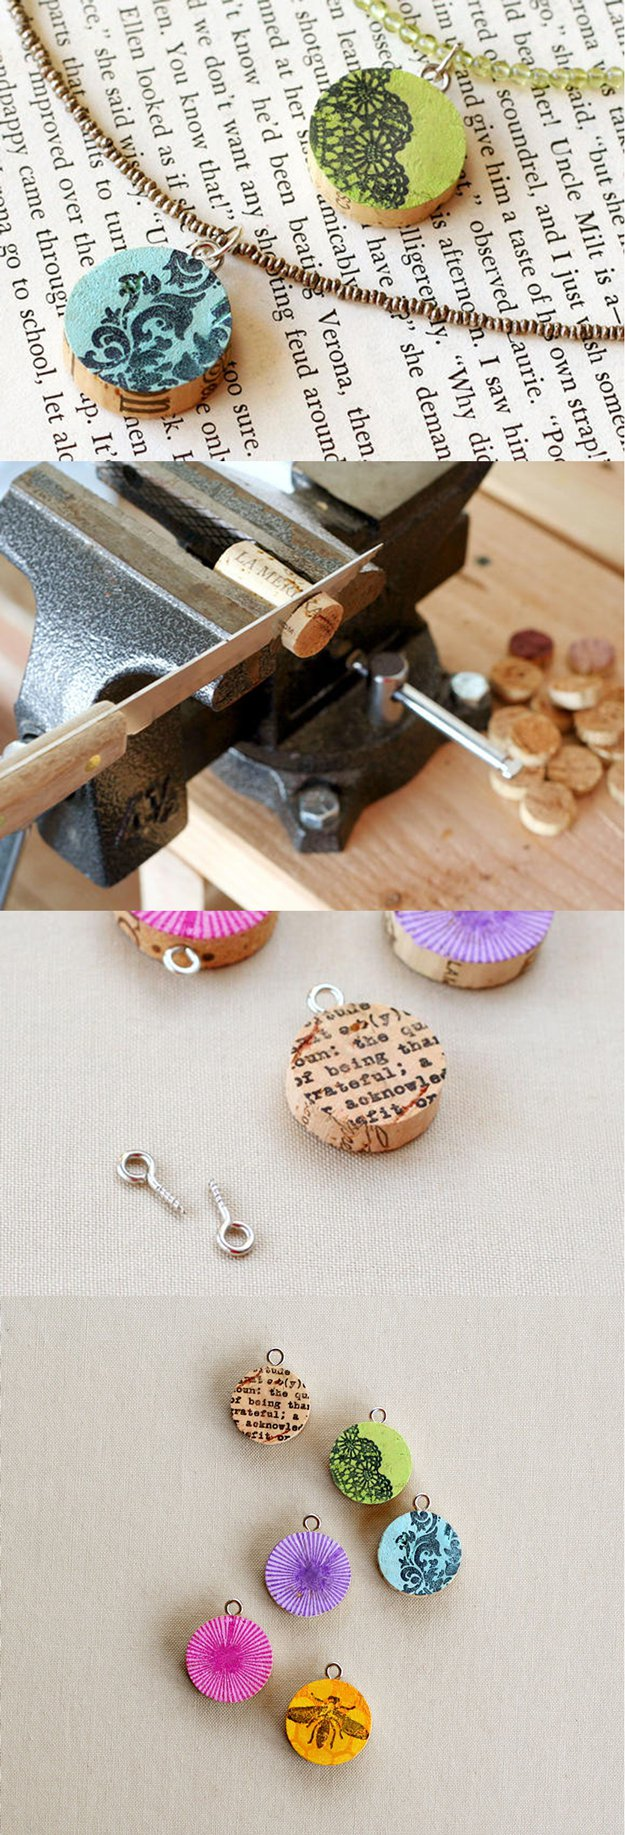 AD-DIY-Projects-You-Can-Do-With-Corks-2